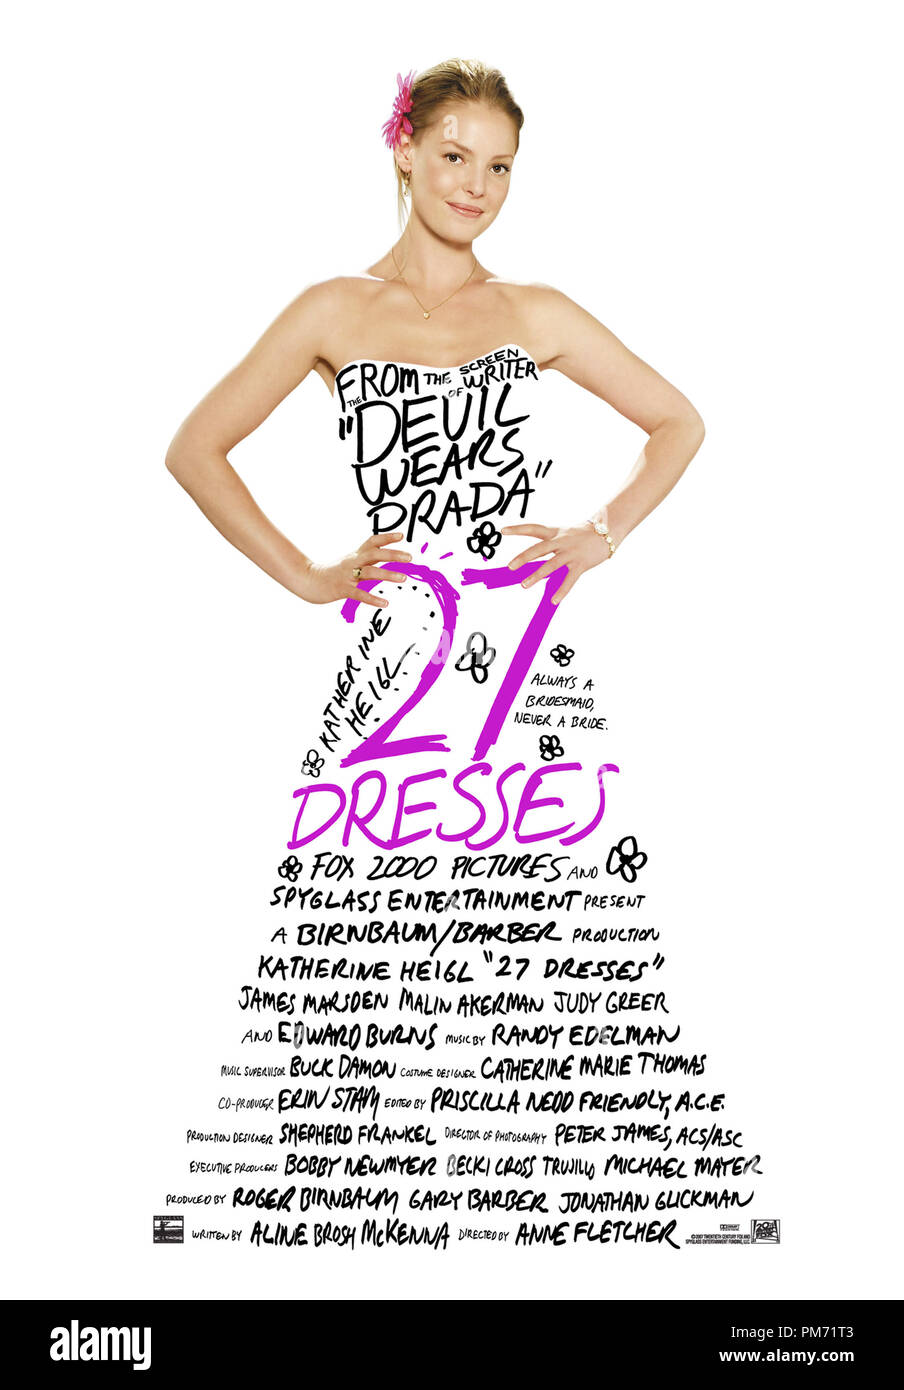 '27 Dresses' Poster © 2008 20th Century Fox  File Reference # 30755216THA  For Editorial Use Only -  All Rights Reserved - Stock Image